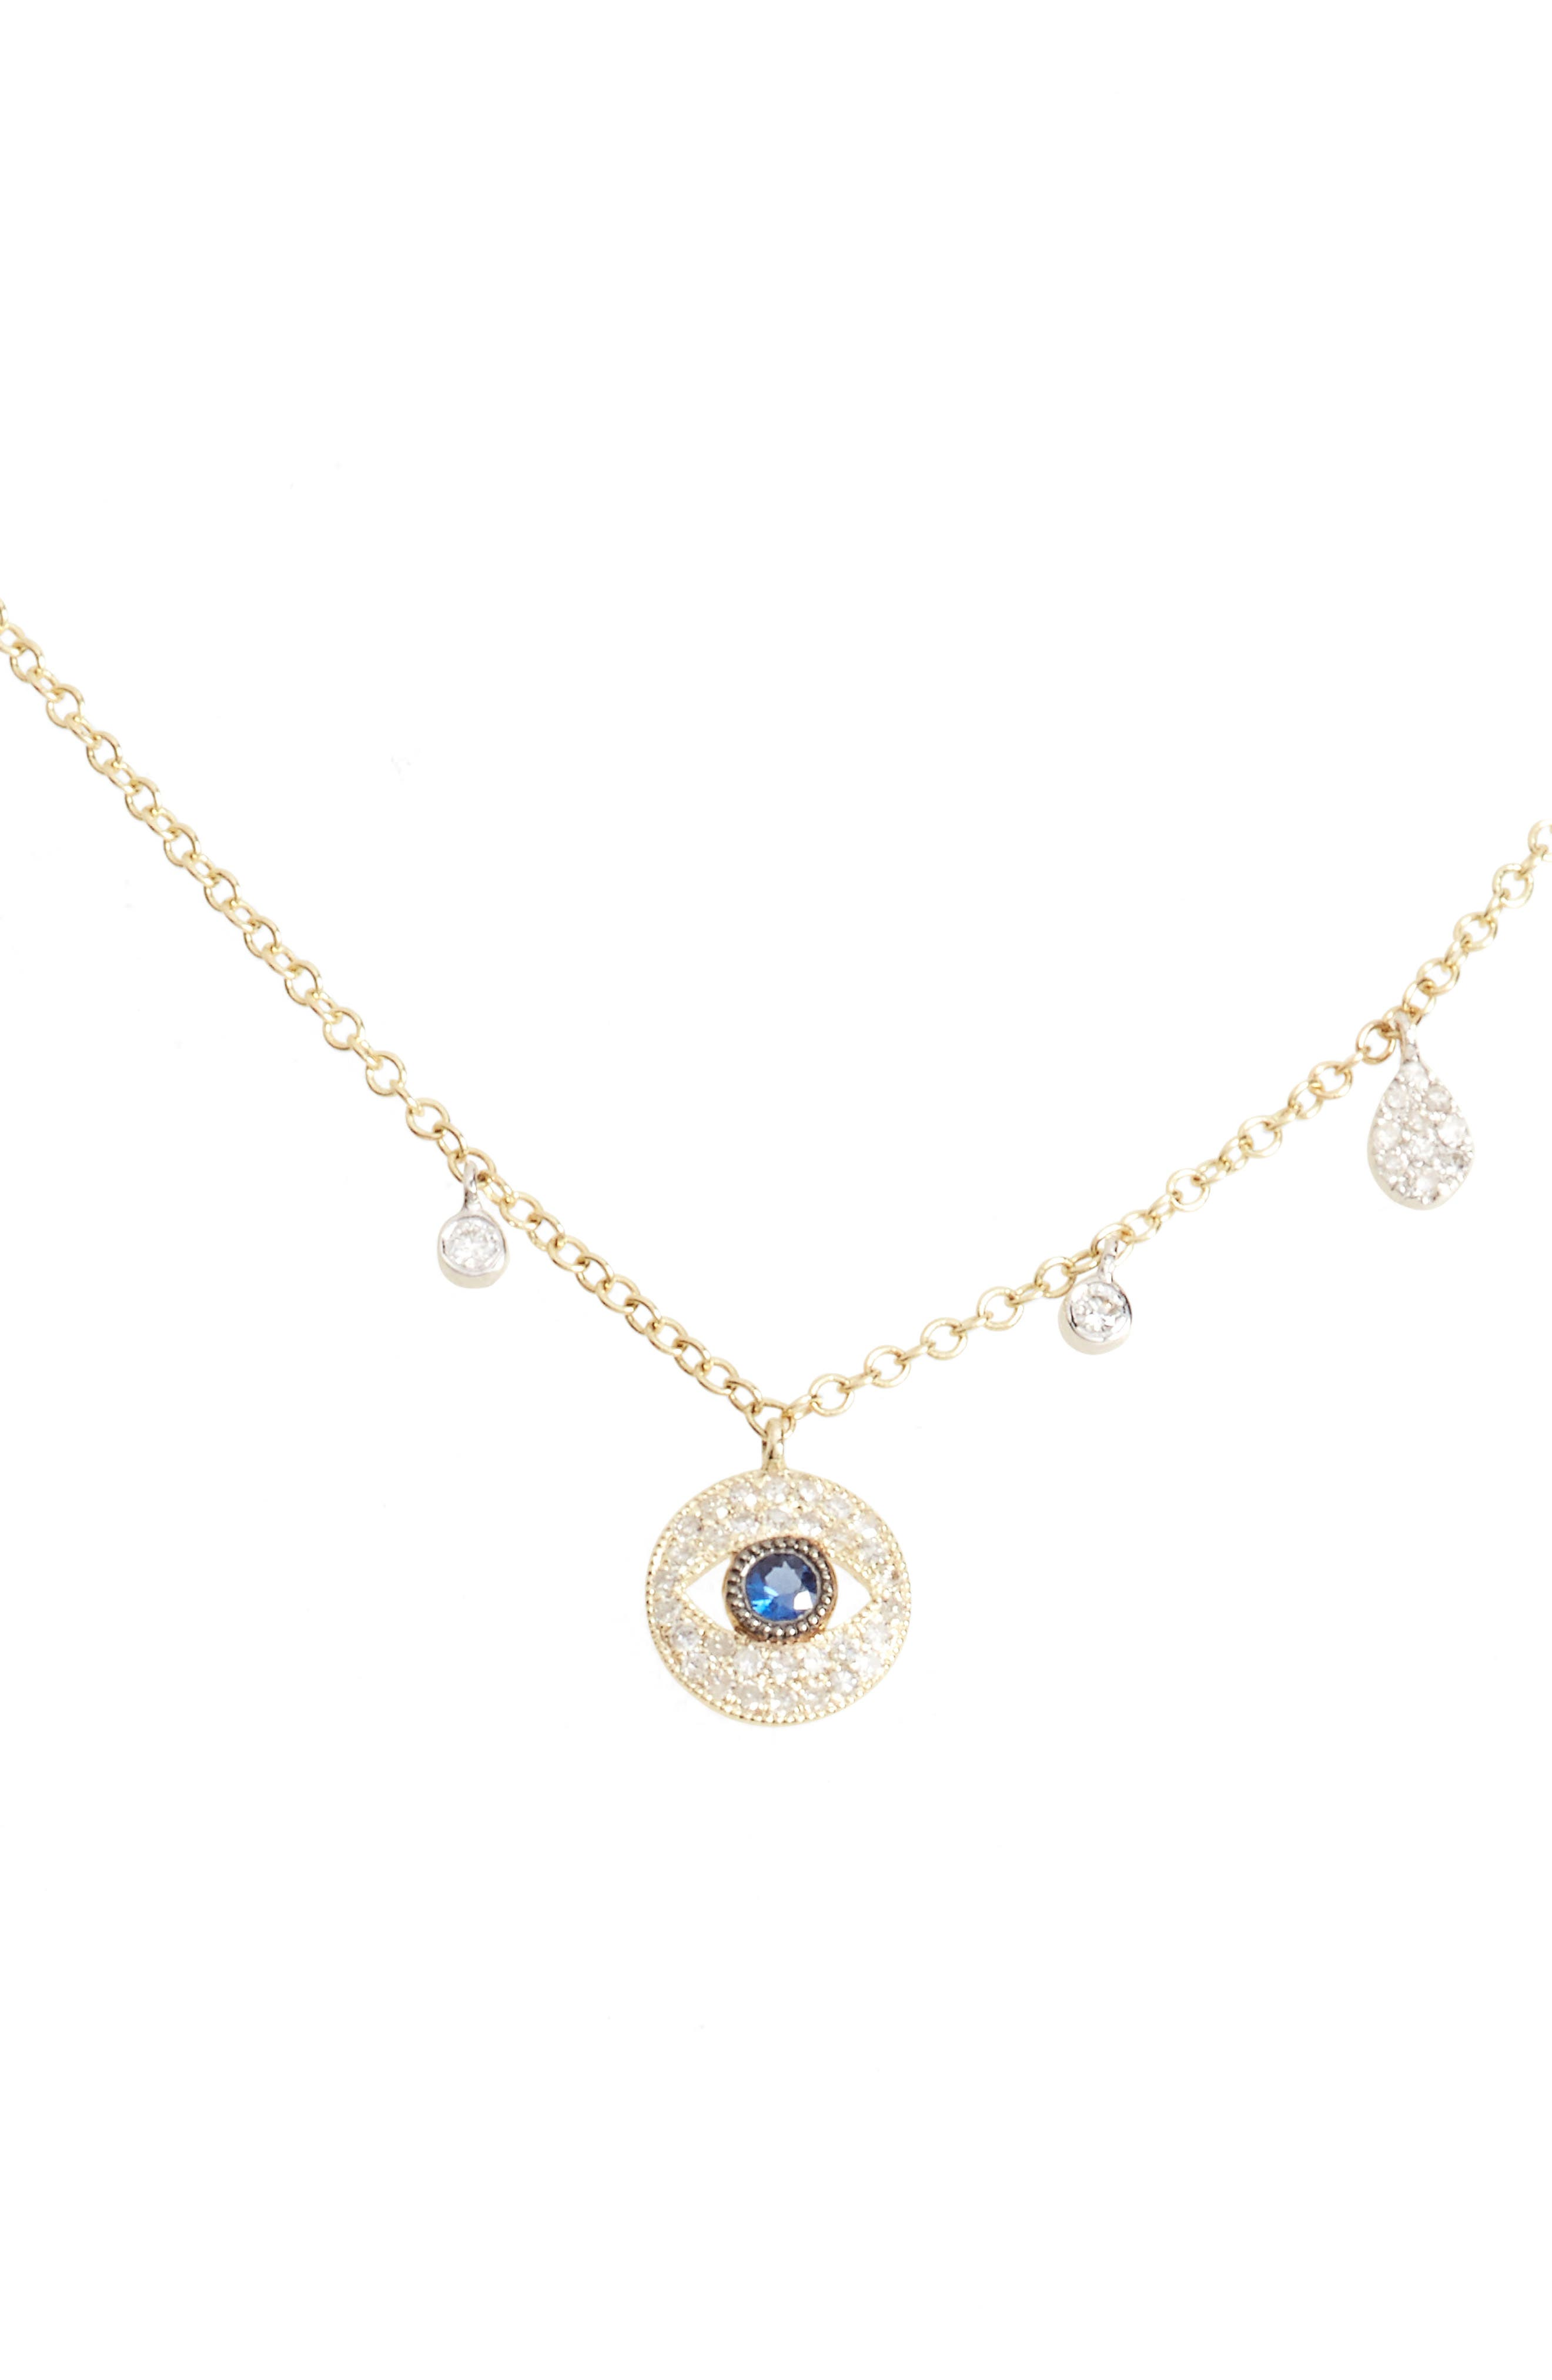 Diamond & Sapphire Evil Eye Pendant Necklace,                             Main thumbnail 1, color,                             YELLOW GOLD